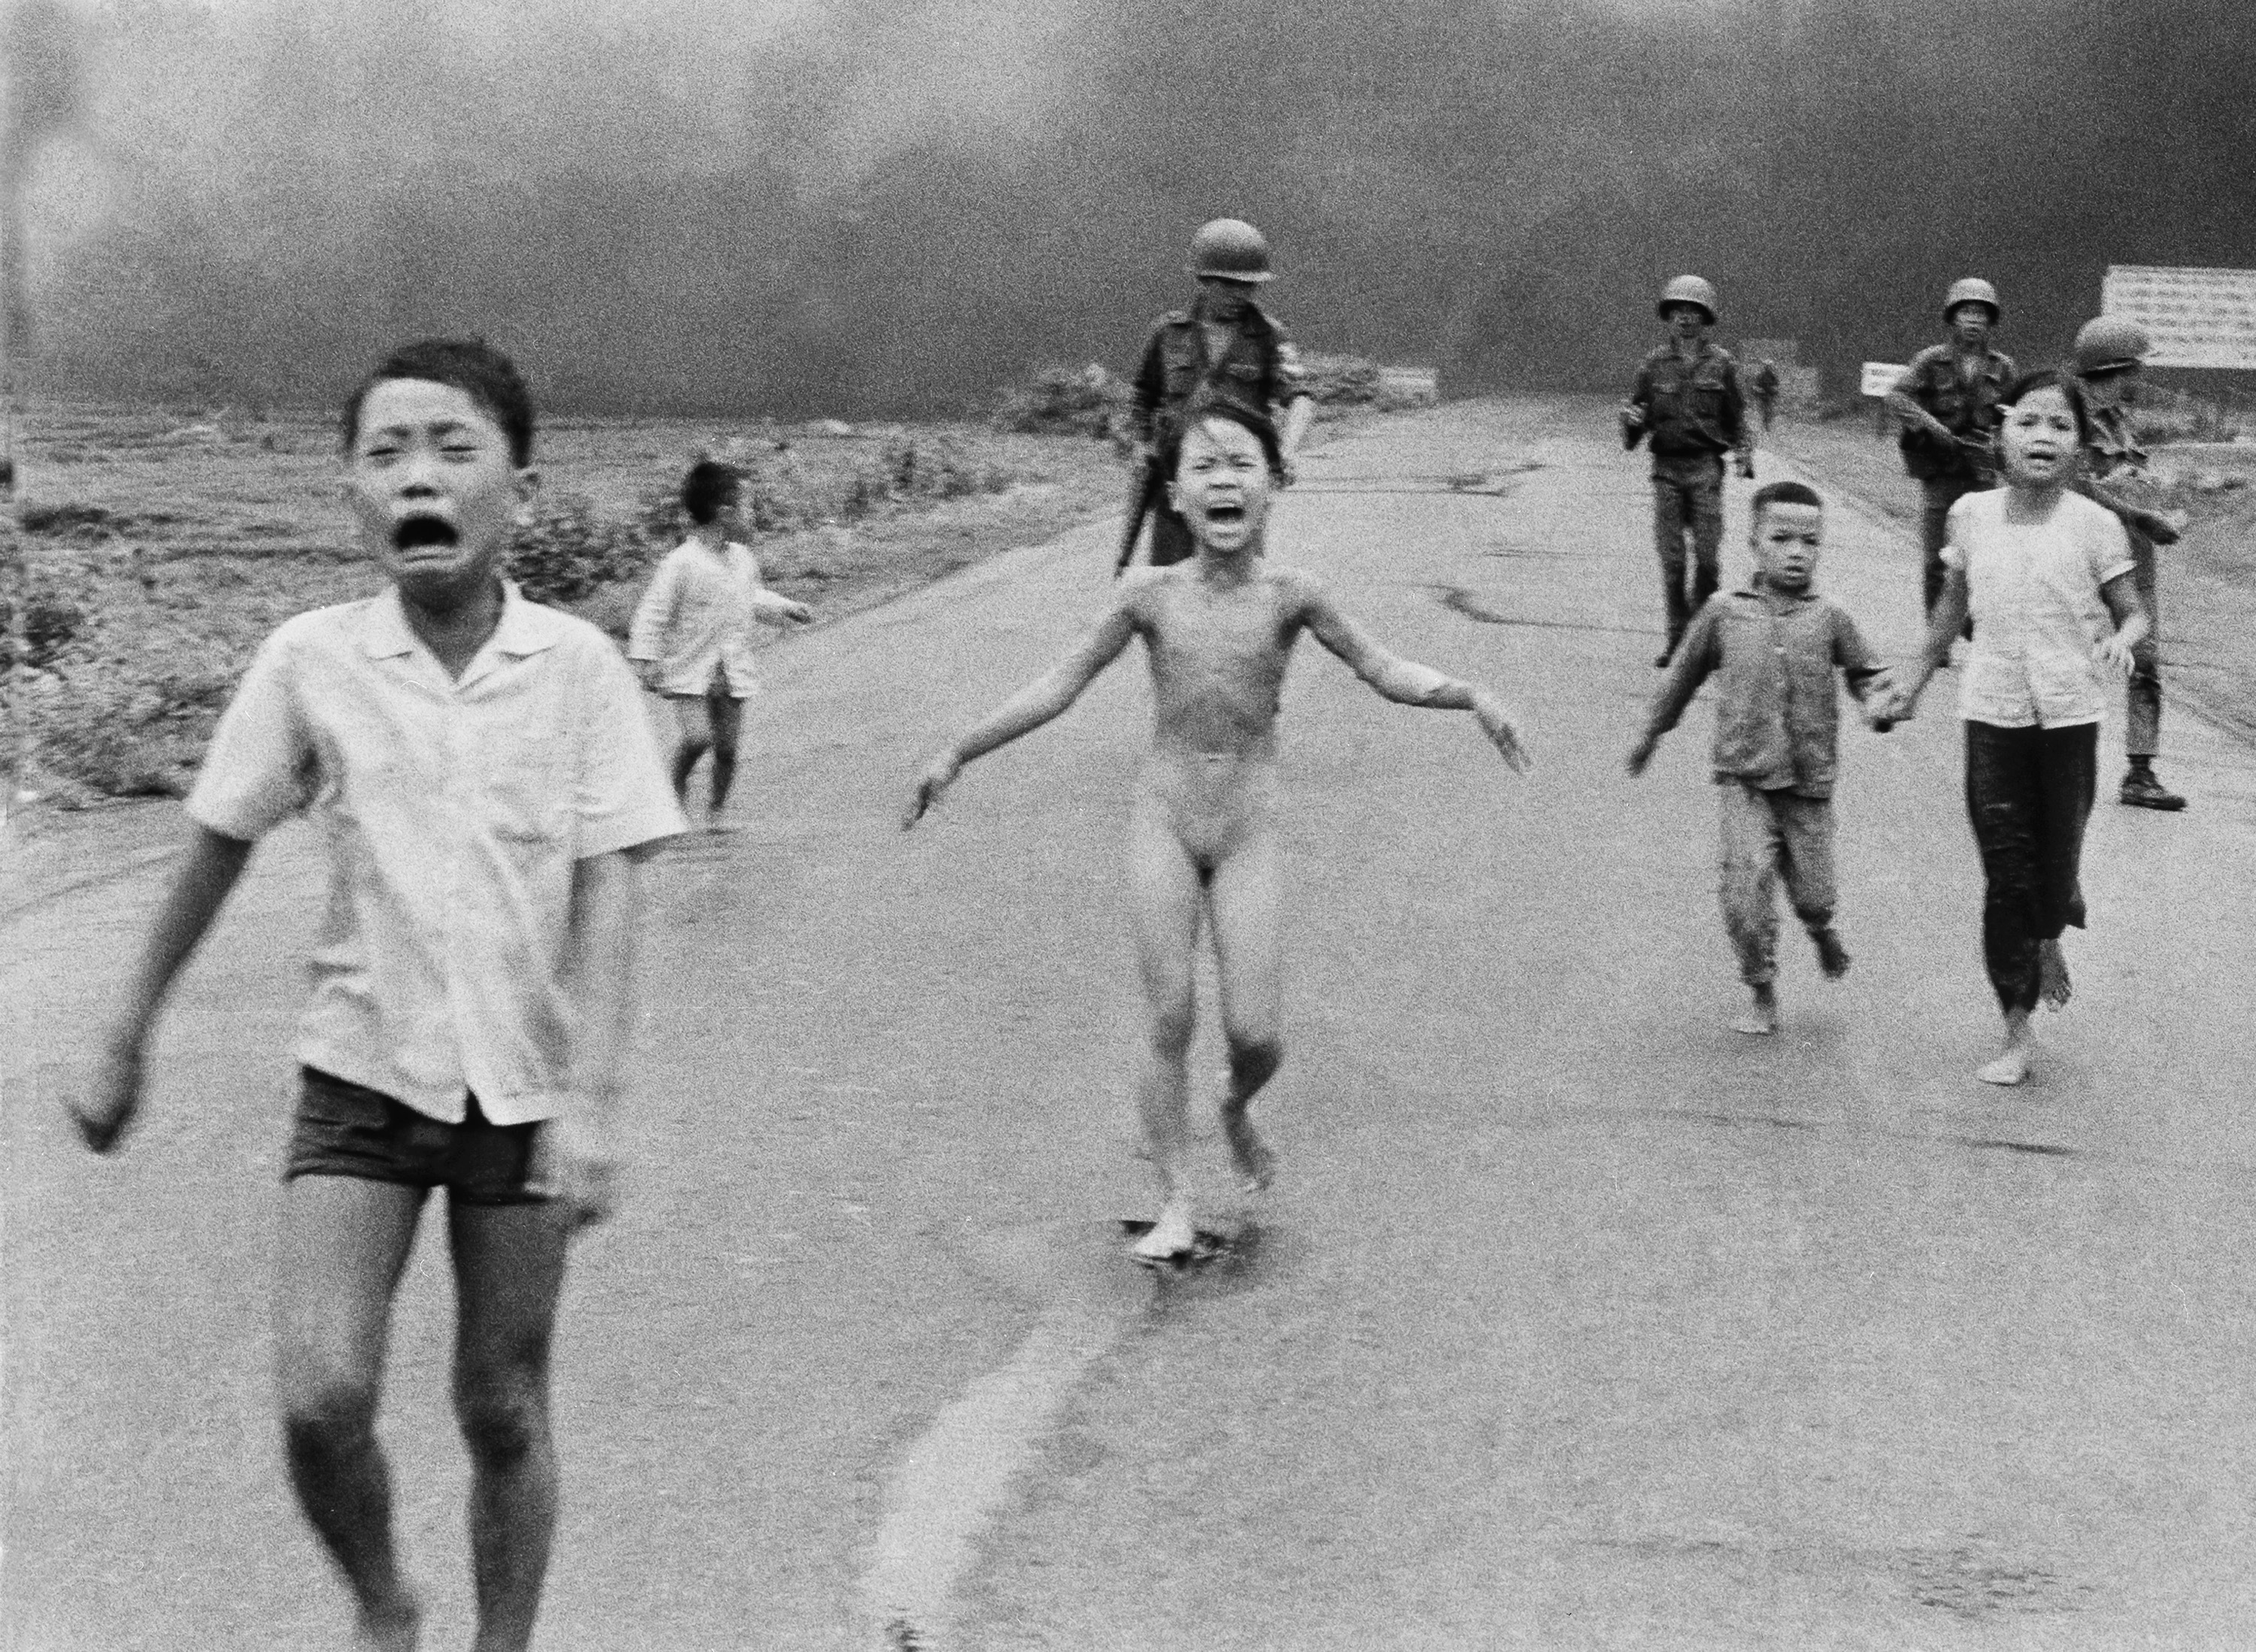 In this June 8, 1972 photo, South Vietnamese forces follow after terrified children, including 9-year-old Kim Phuc, center, as they run down Route 1 near Trang Bang after an aerial napalm attack on suspected Viet Cong hiding places.